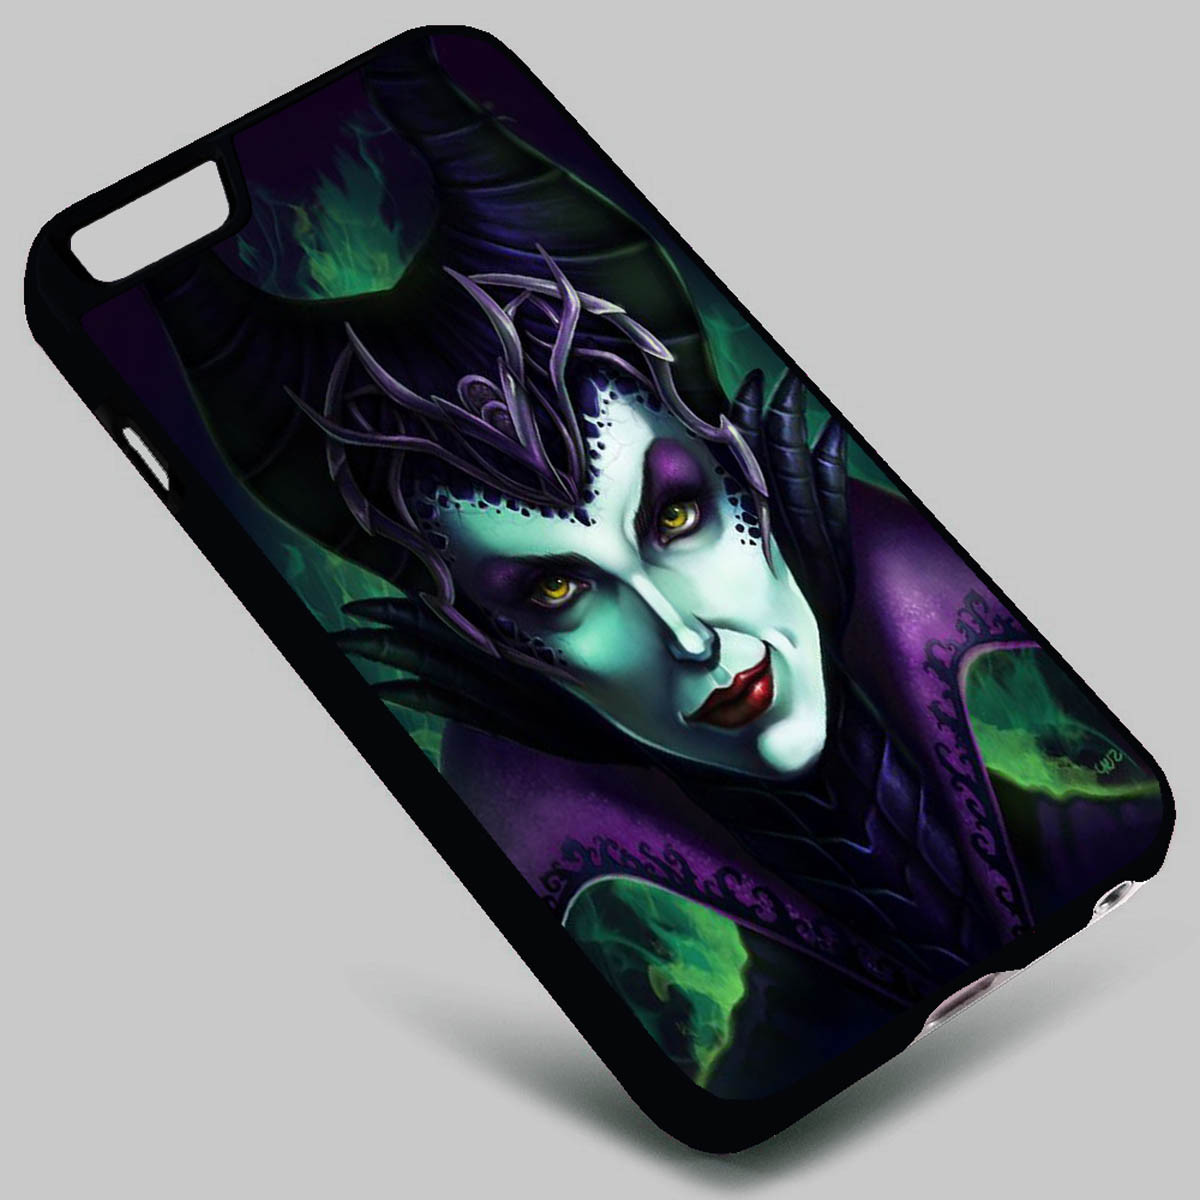 Disney Maleficent Sleeping Beauty On Your Case Iphone 4 4s 5 5s 5c 6 6plus 7 Samsung Galaxy S3 S4 S5 S6 S7 Htc Case